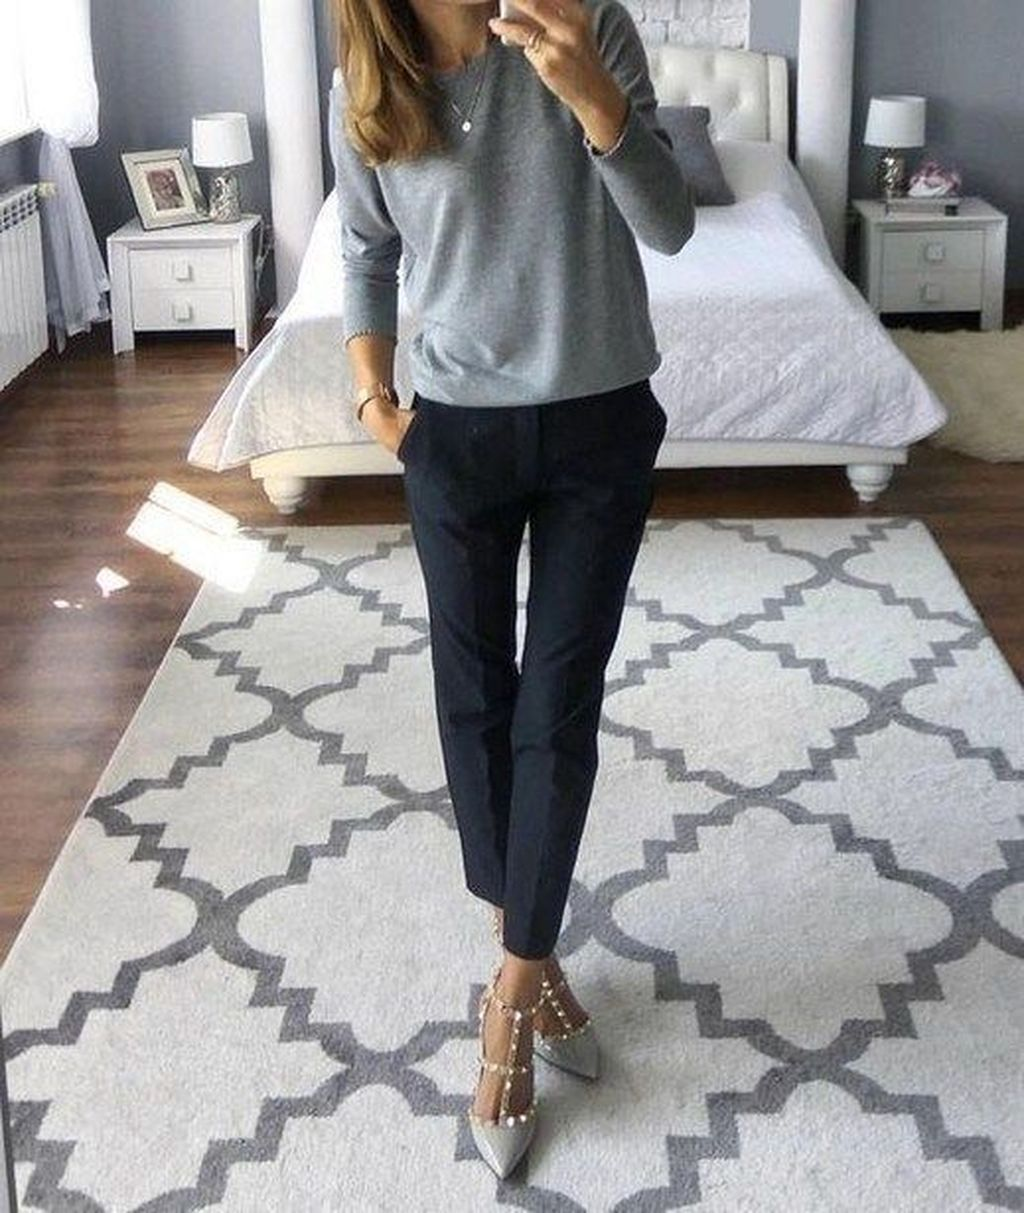 48 Trendy Professional Outfit Ideas To Wear This Fall #falloutfitsforwork